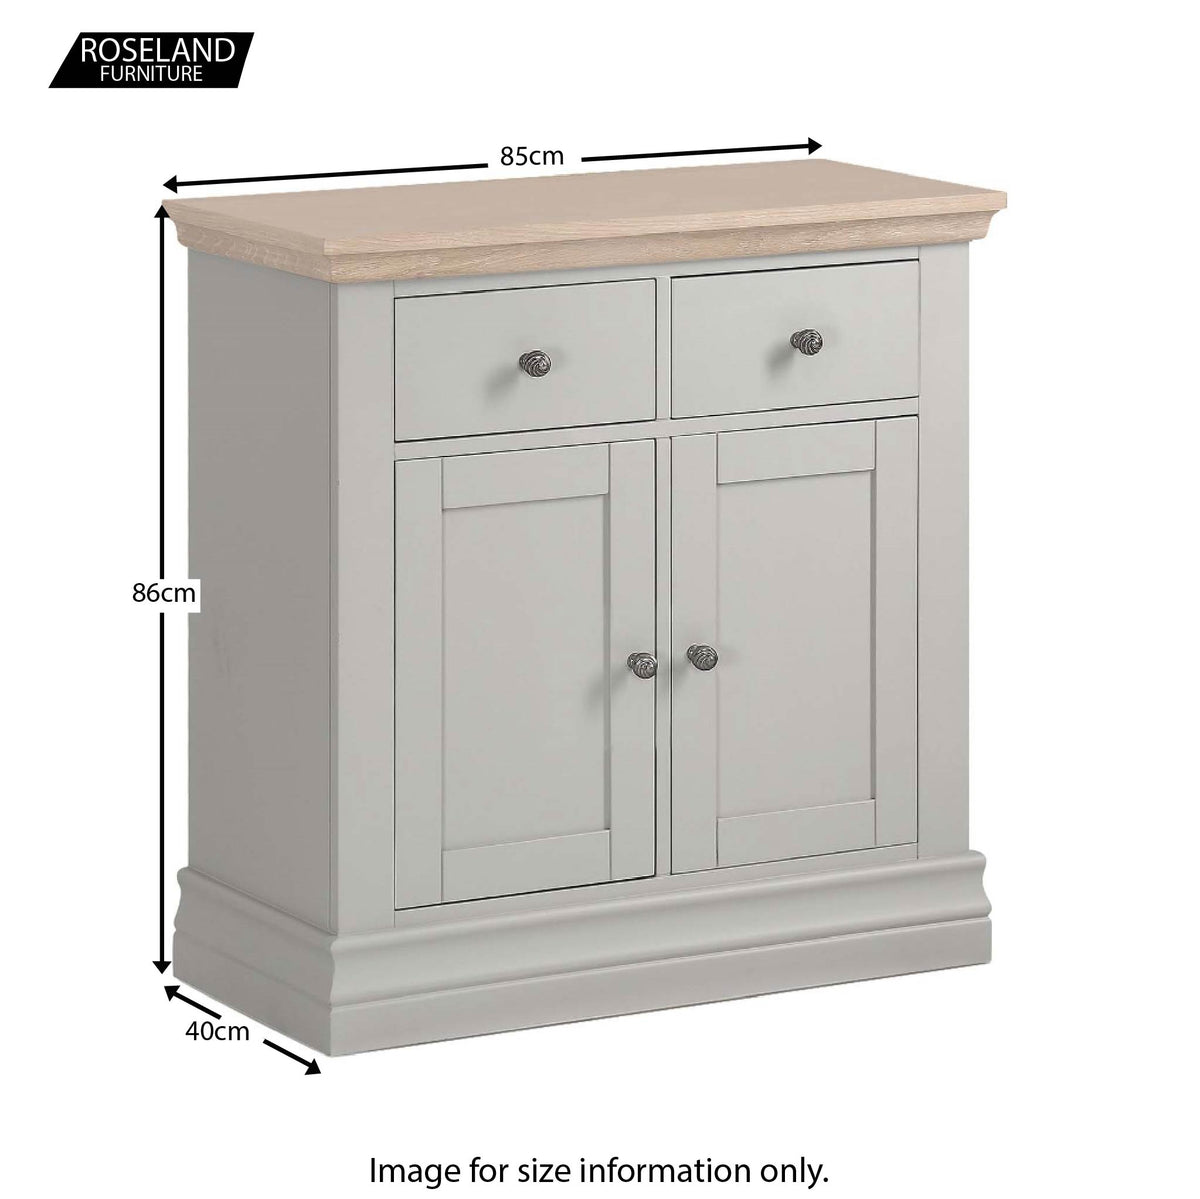 Dimensions from Melrose Grey Mini Sideboard from Roseland Furniture